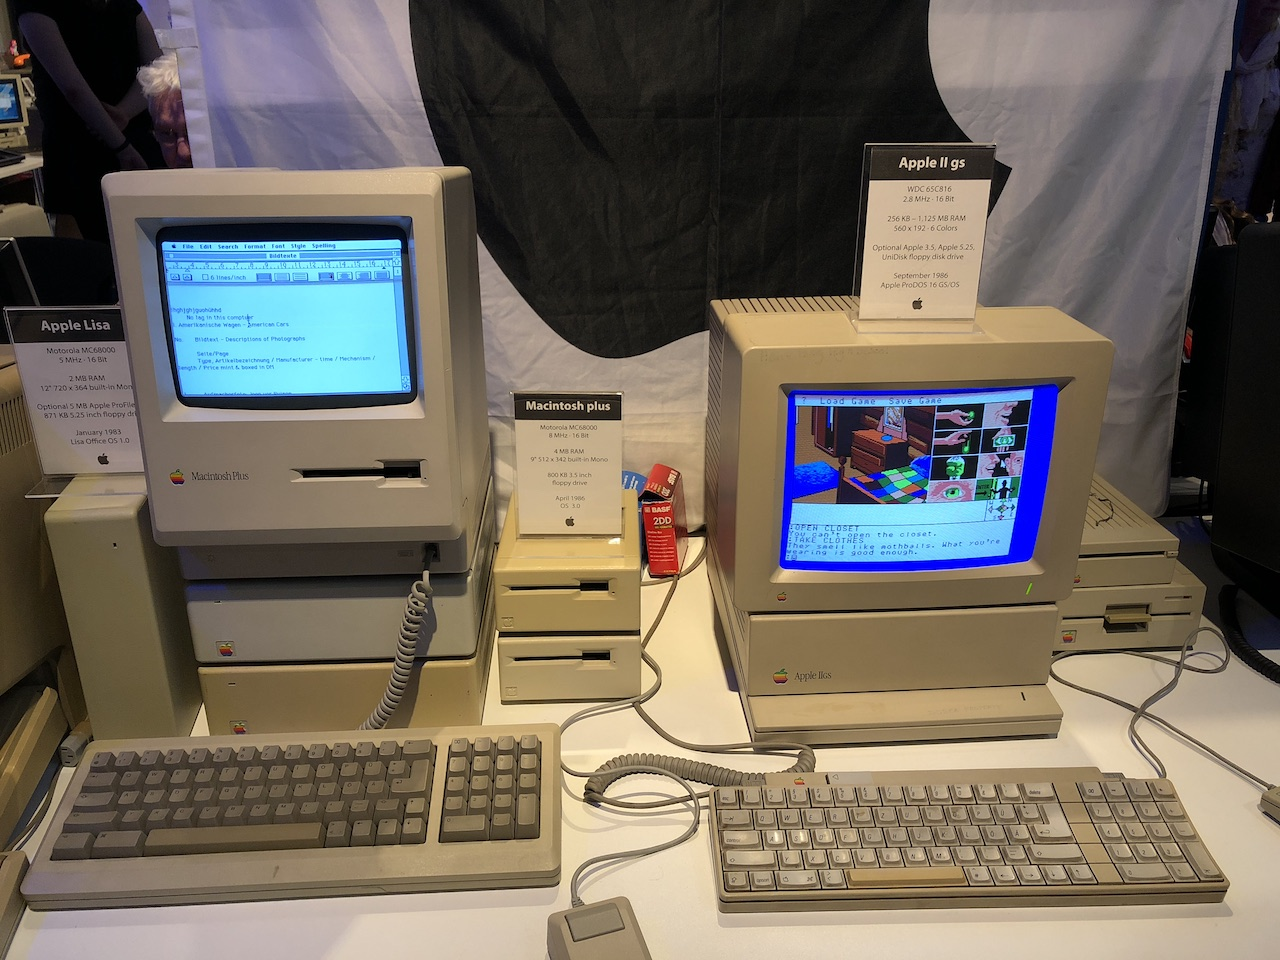 Apple Macintosh Plus und Apple II GS. (Bild: Stefan Vogt)